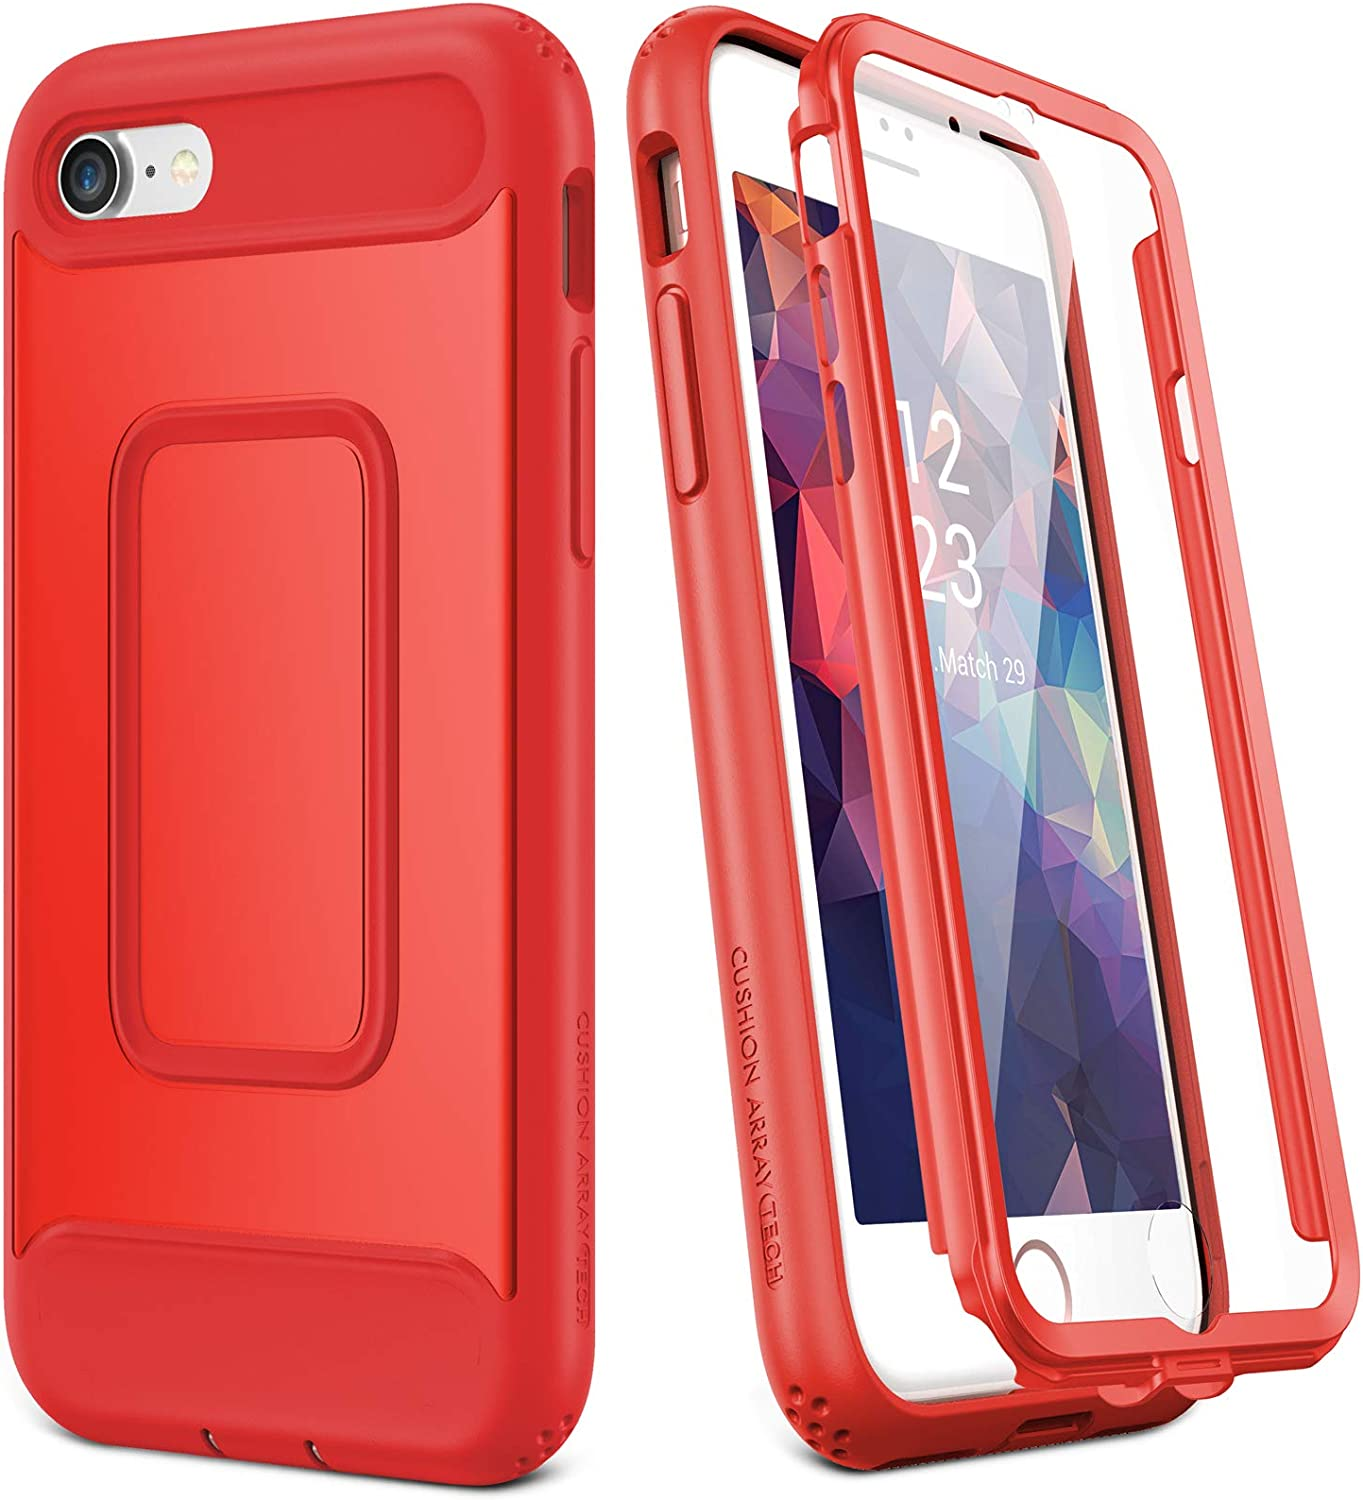 YOUMAKER Designed for iPhone SE 2020 Case/iPhone 8 Case/iPhone 7 Case (NOT PLUS),Full-body Rugged Case with Built-in Screen Protector for iPhone SE 2nd Generation/8/7 4.7 Inch - Red